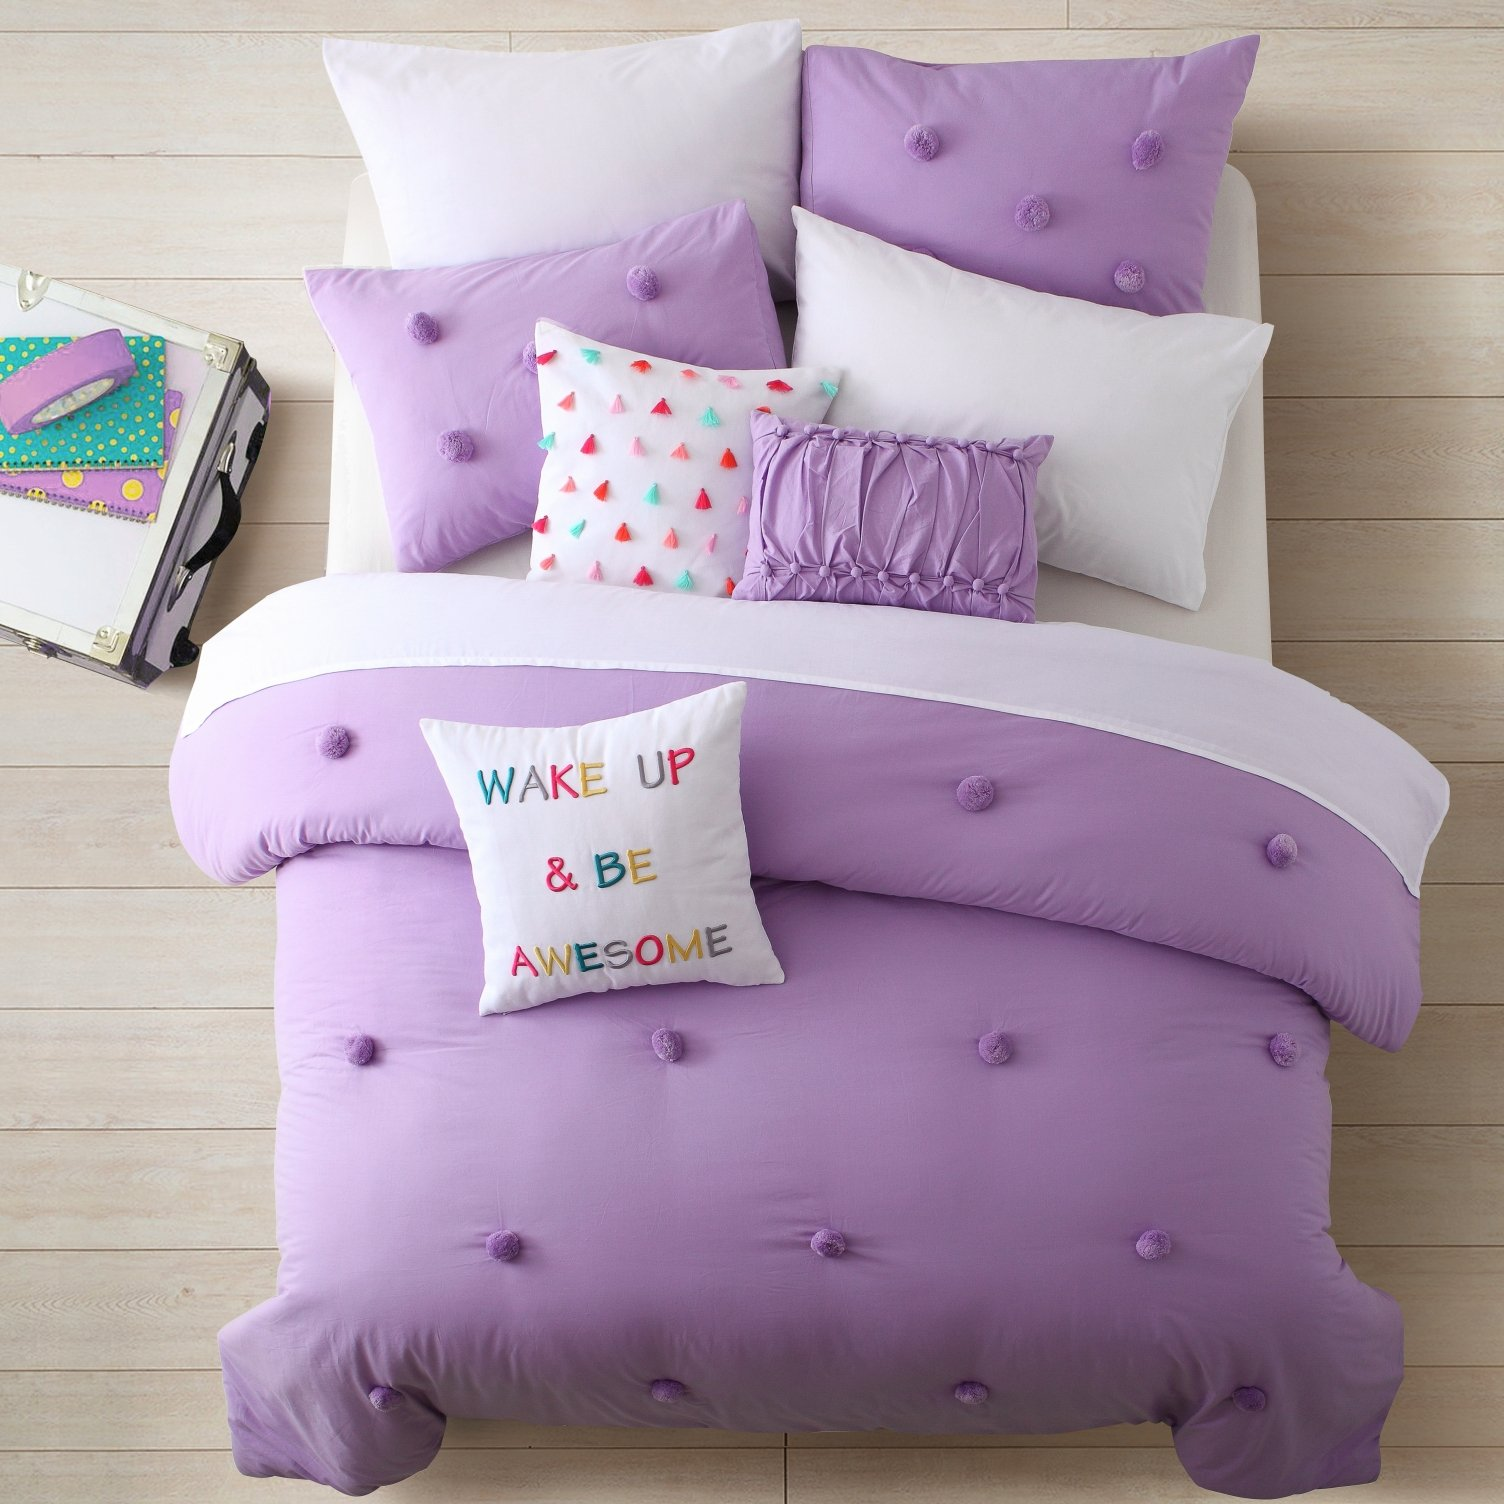 Cassicel Home Anna 3pcs Pompoms Comforter Set Soft and Cozy Bedding for Kids Teen Girls College Students Gifts Twin XL Size Bed Set, Purple